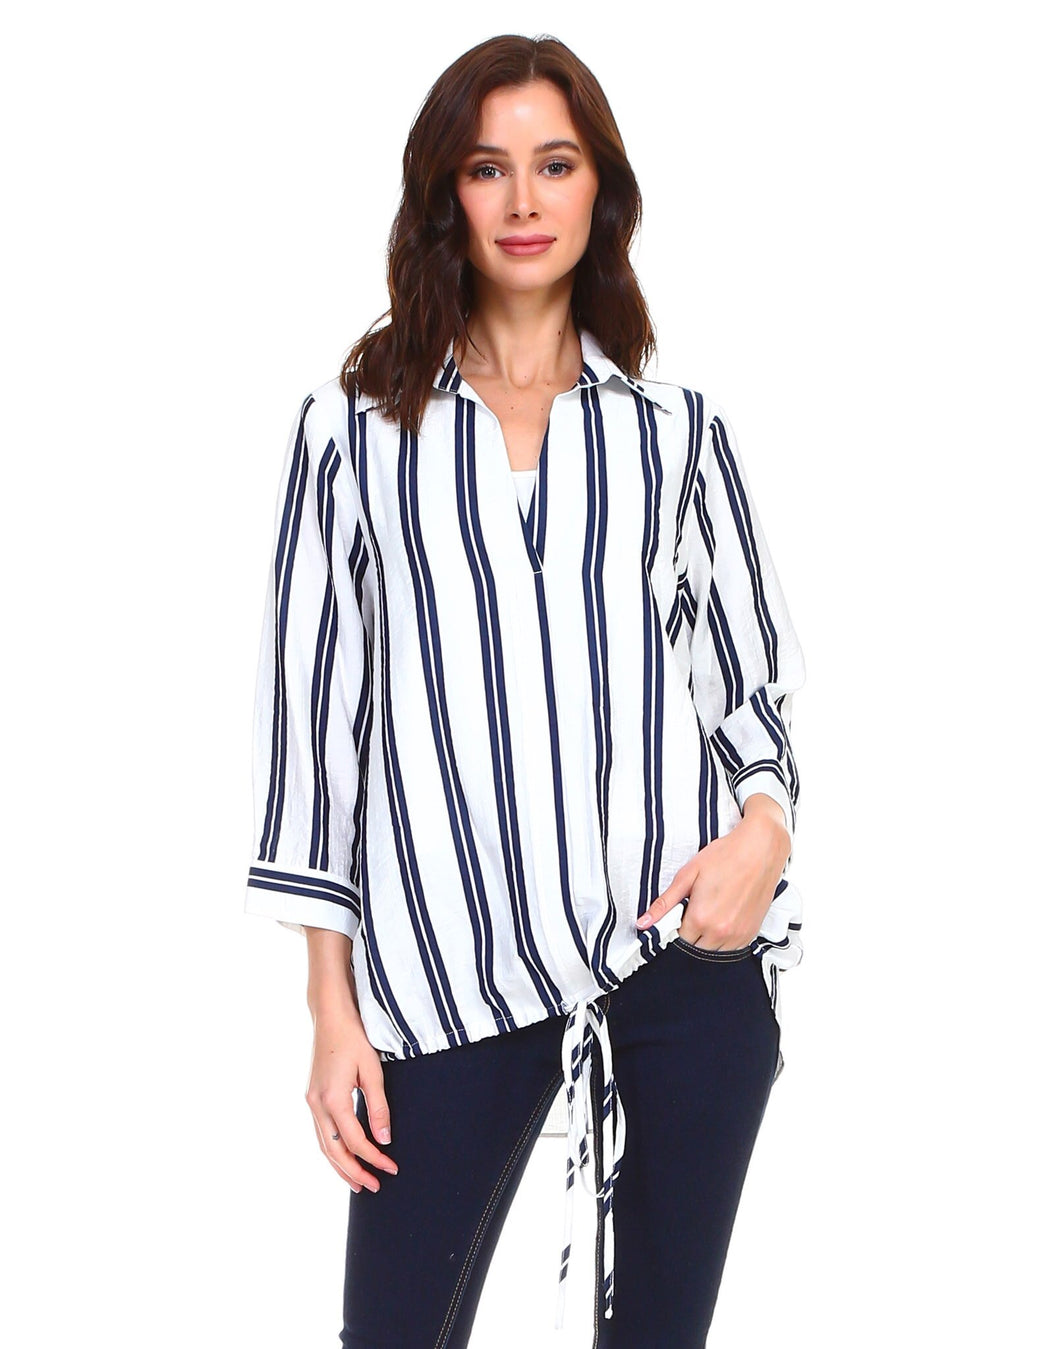 Nautical striped designer top